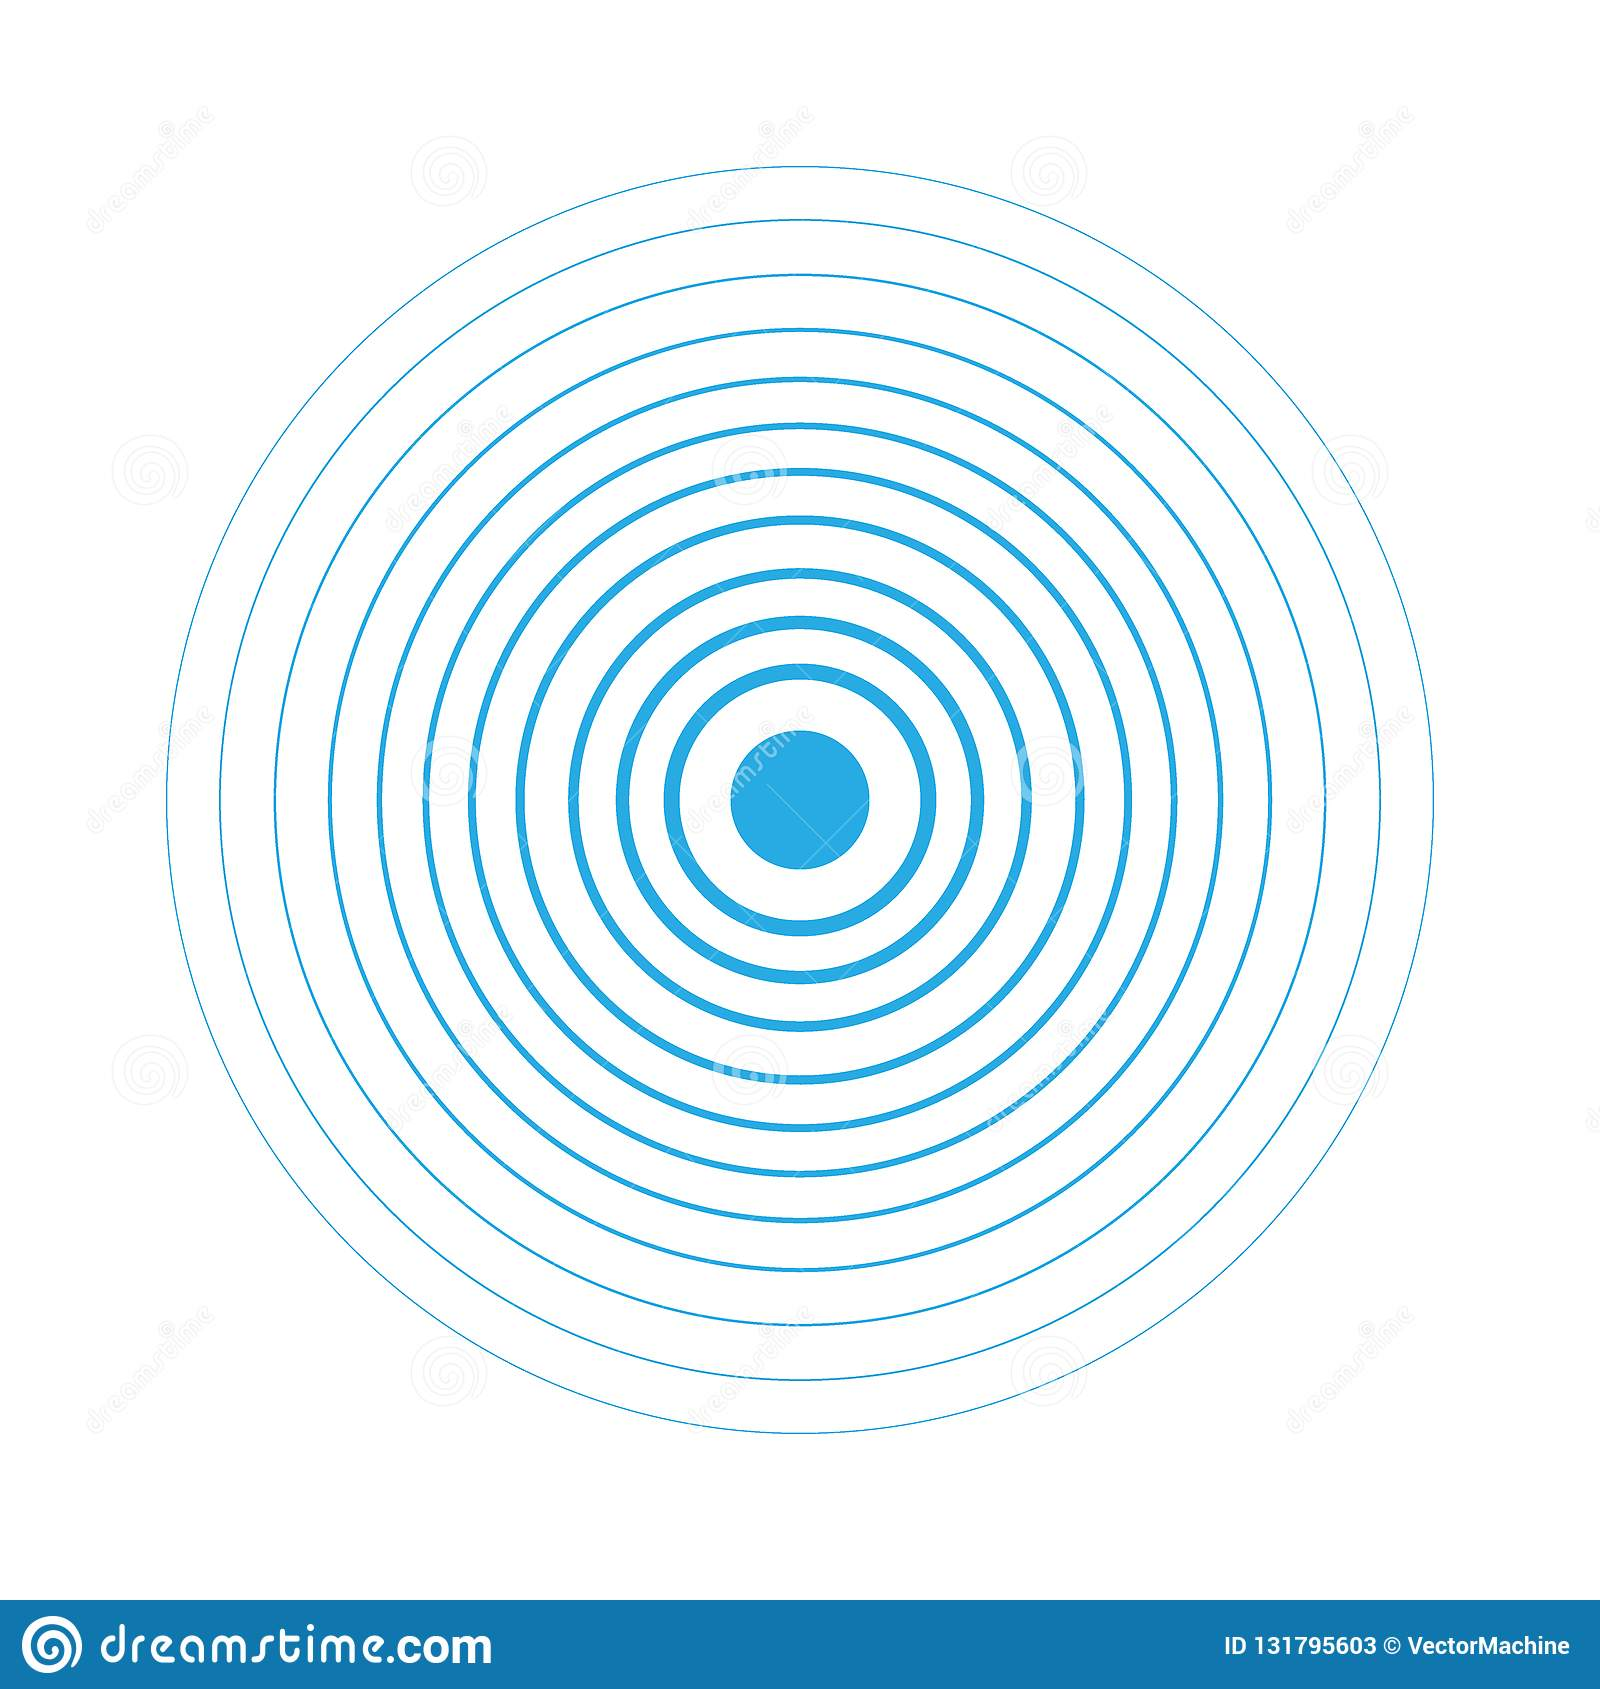 Radar screen concentric circle elements. Vector illustration for sound wave. White and blue color ring. Circle spin target. Radio